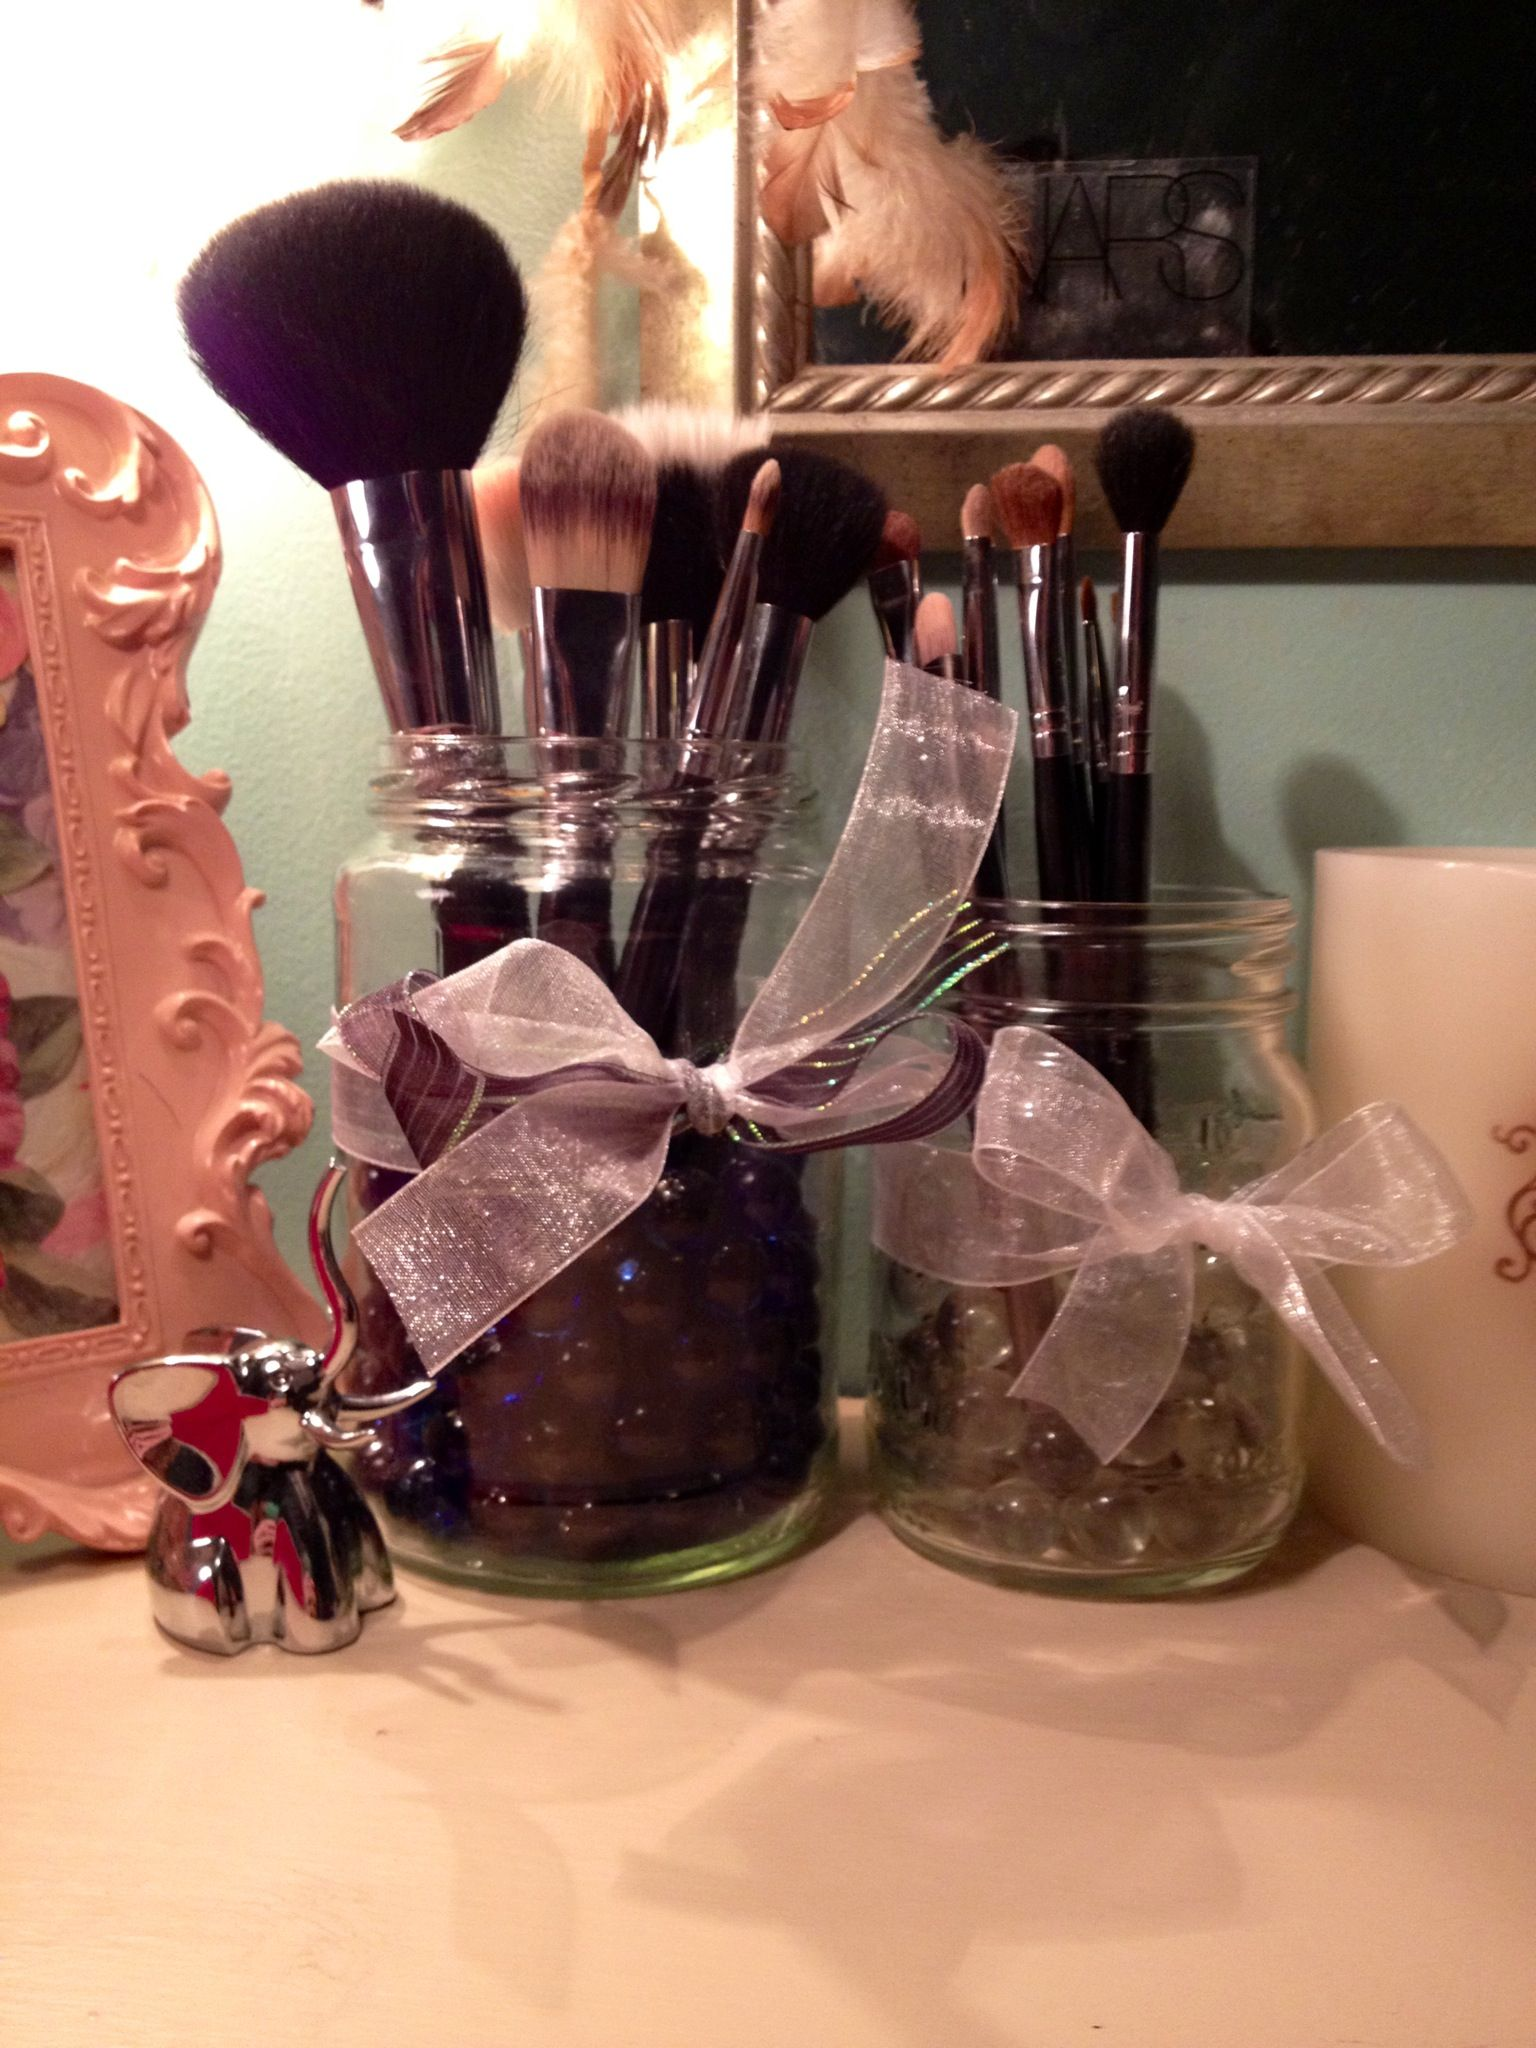 How to organize your makeup brushes; Get a jar and full it